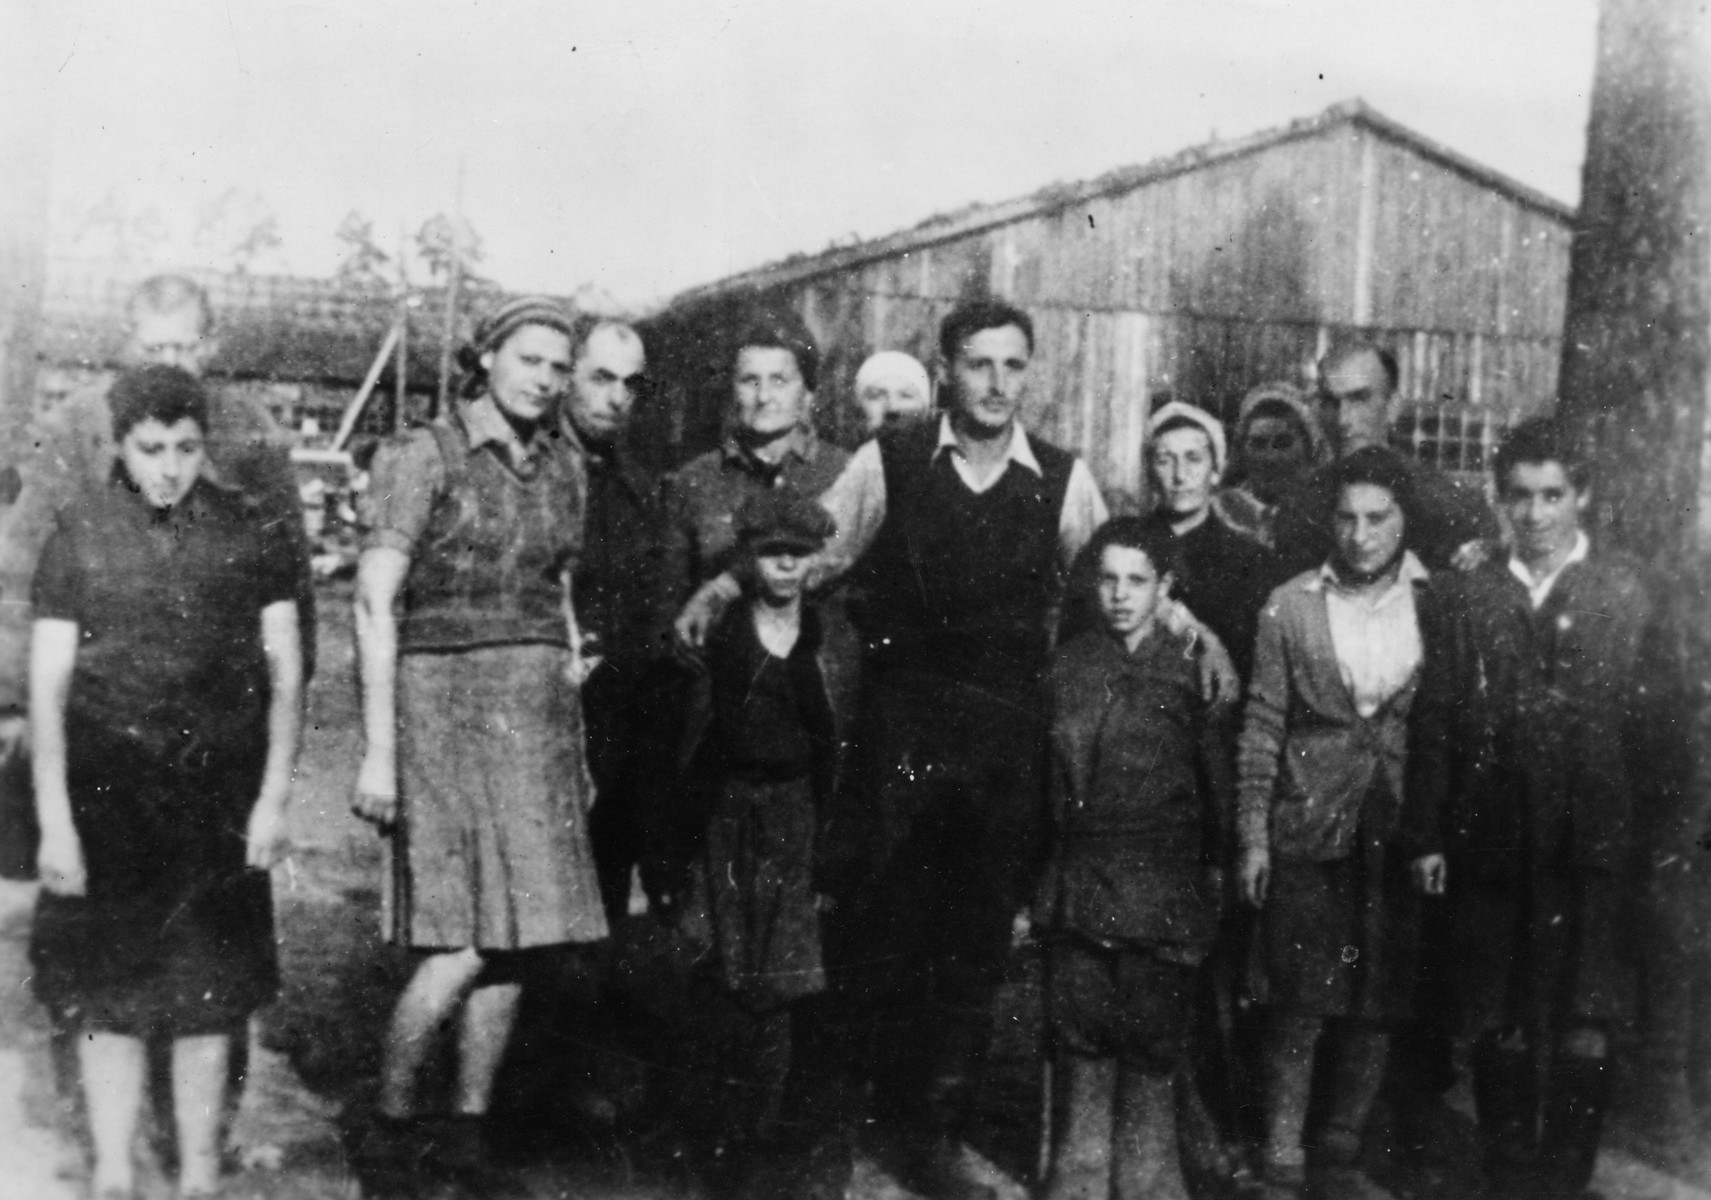 Group portrait of survivors of the Klooga concentration camp in front of a barracks.  Rae Gawendo is standing in the back row, second from the right.  Adella Greenhold is standing second from the left in the front. (She survived with her sister.)  The man in the front with the boy is Mr. Benjamin  Weintraub.